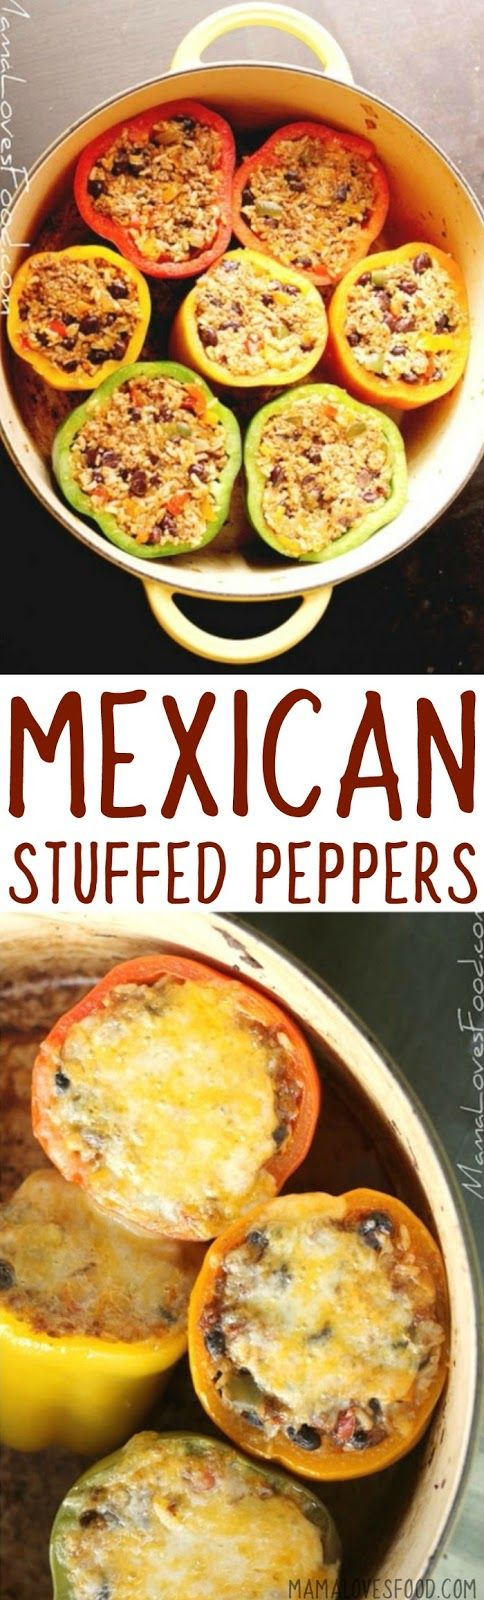 this was a big hit!  def make again!!!     Stuffed Peppers {Mexican Style} - Easy Mexican Stuffed Peppers Recipe